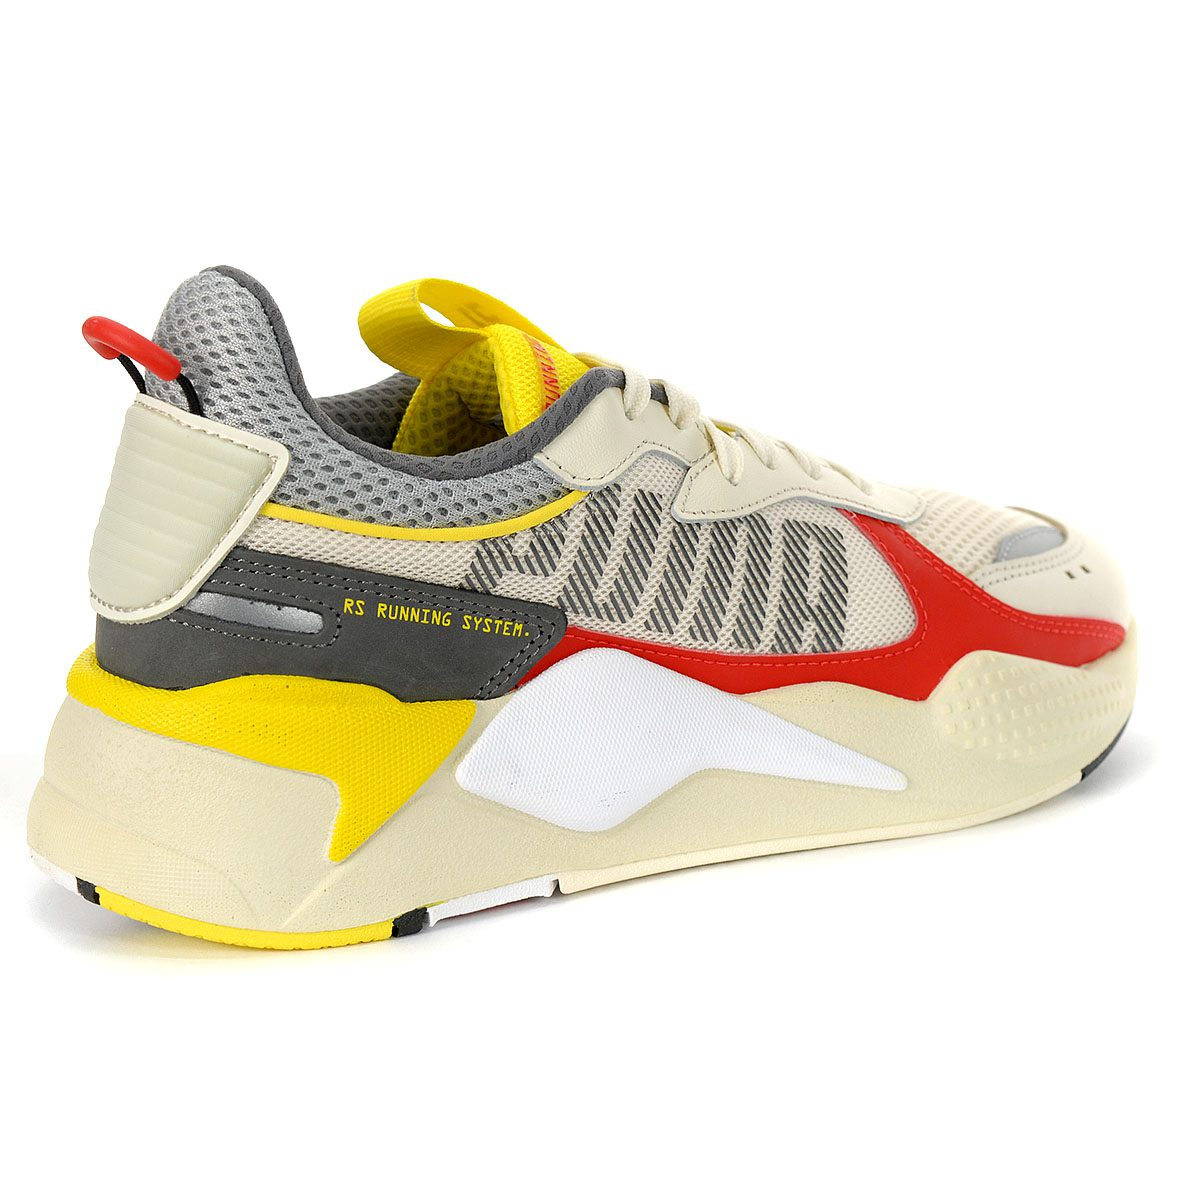 Puma Men's RS-X Bold Whisper White/High Risk Red Sneakers ...